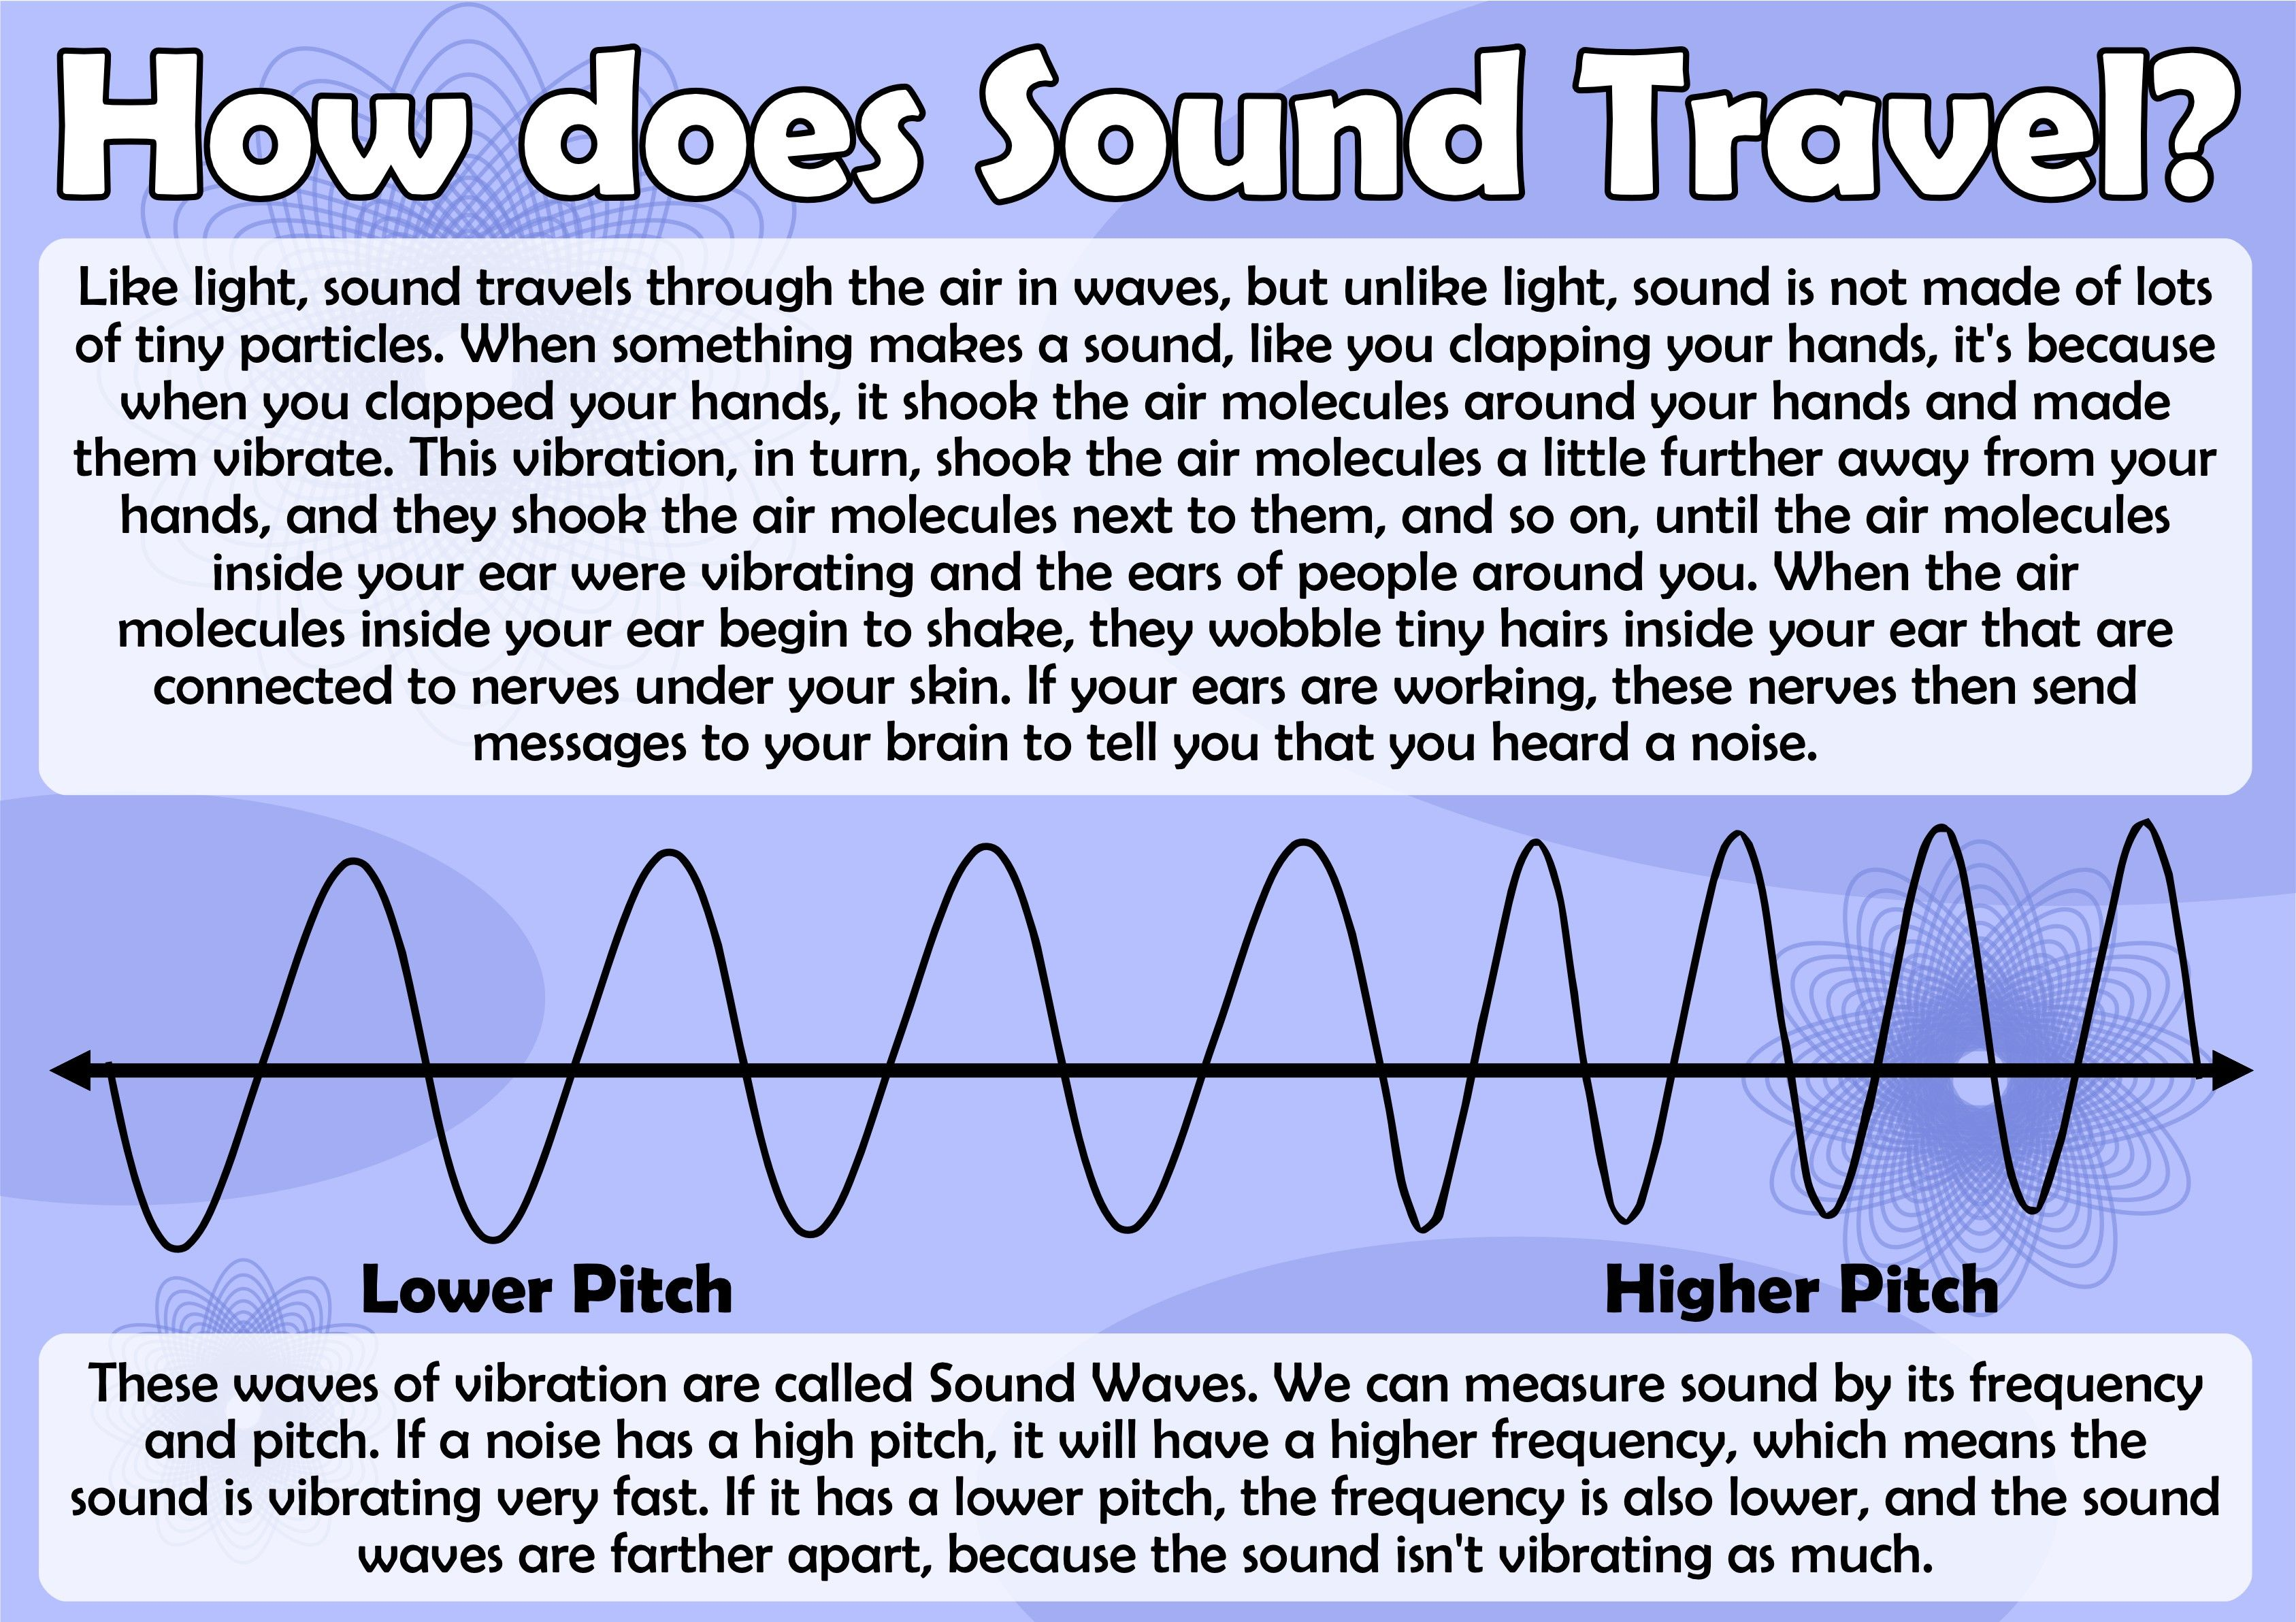 How Does Sound Travel? #Poster #Science #Sound   Music education quotes [ 2383 x 3374 Pixel ]